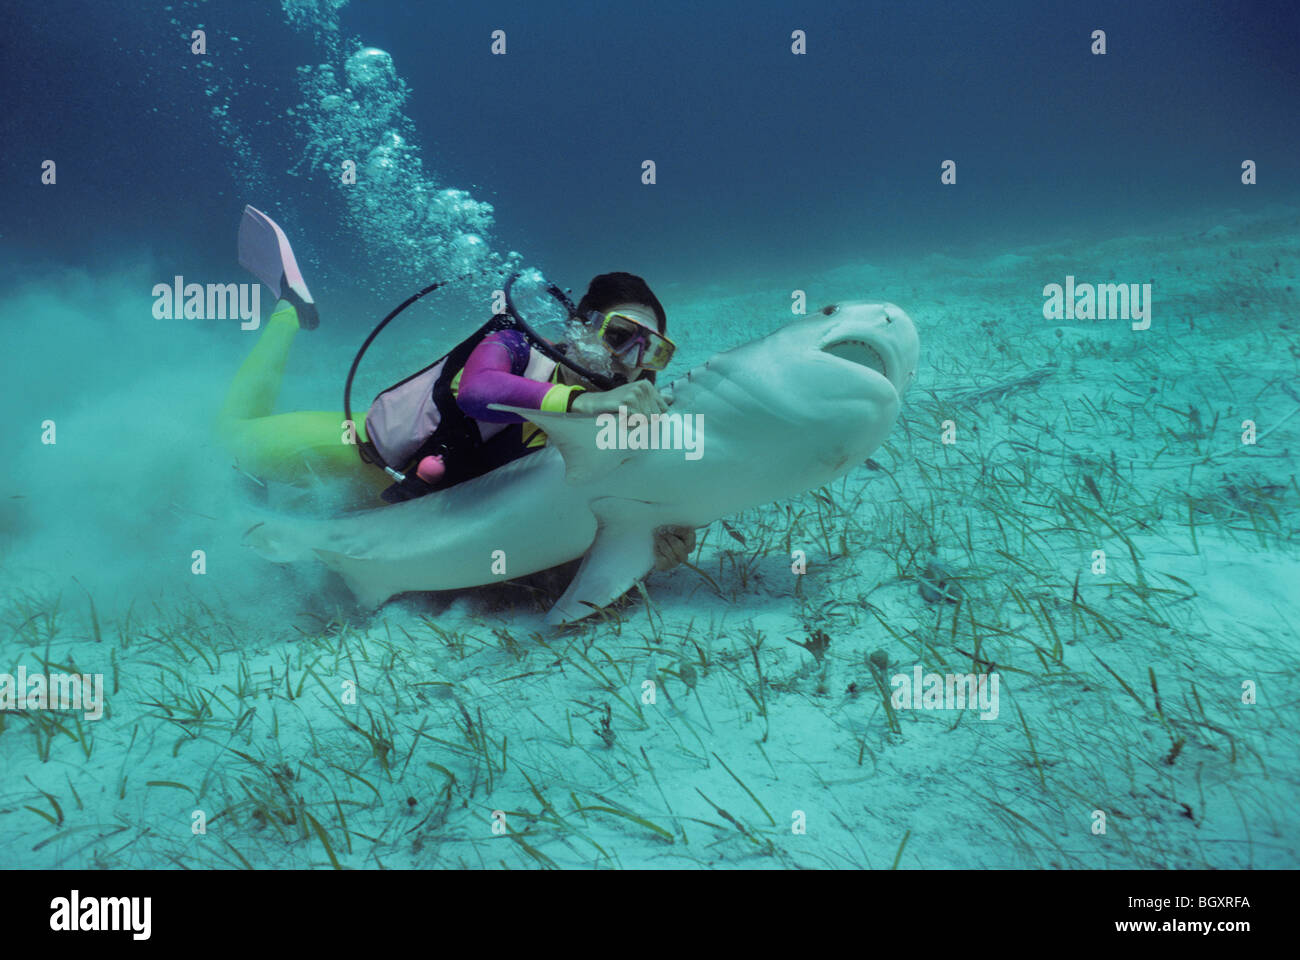 Scientsist revives and saves Tiger Shark (Galeocerdo cuvier) by forcing water across its gills - Stock Image